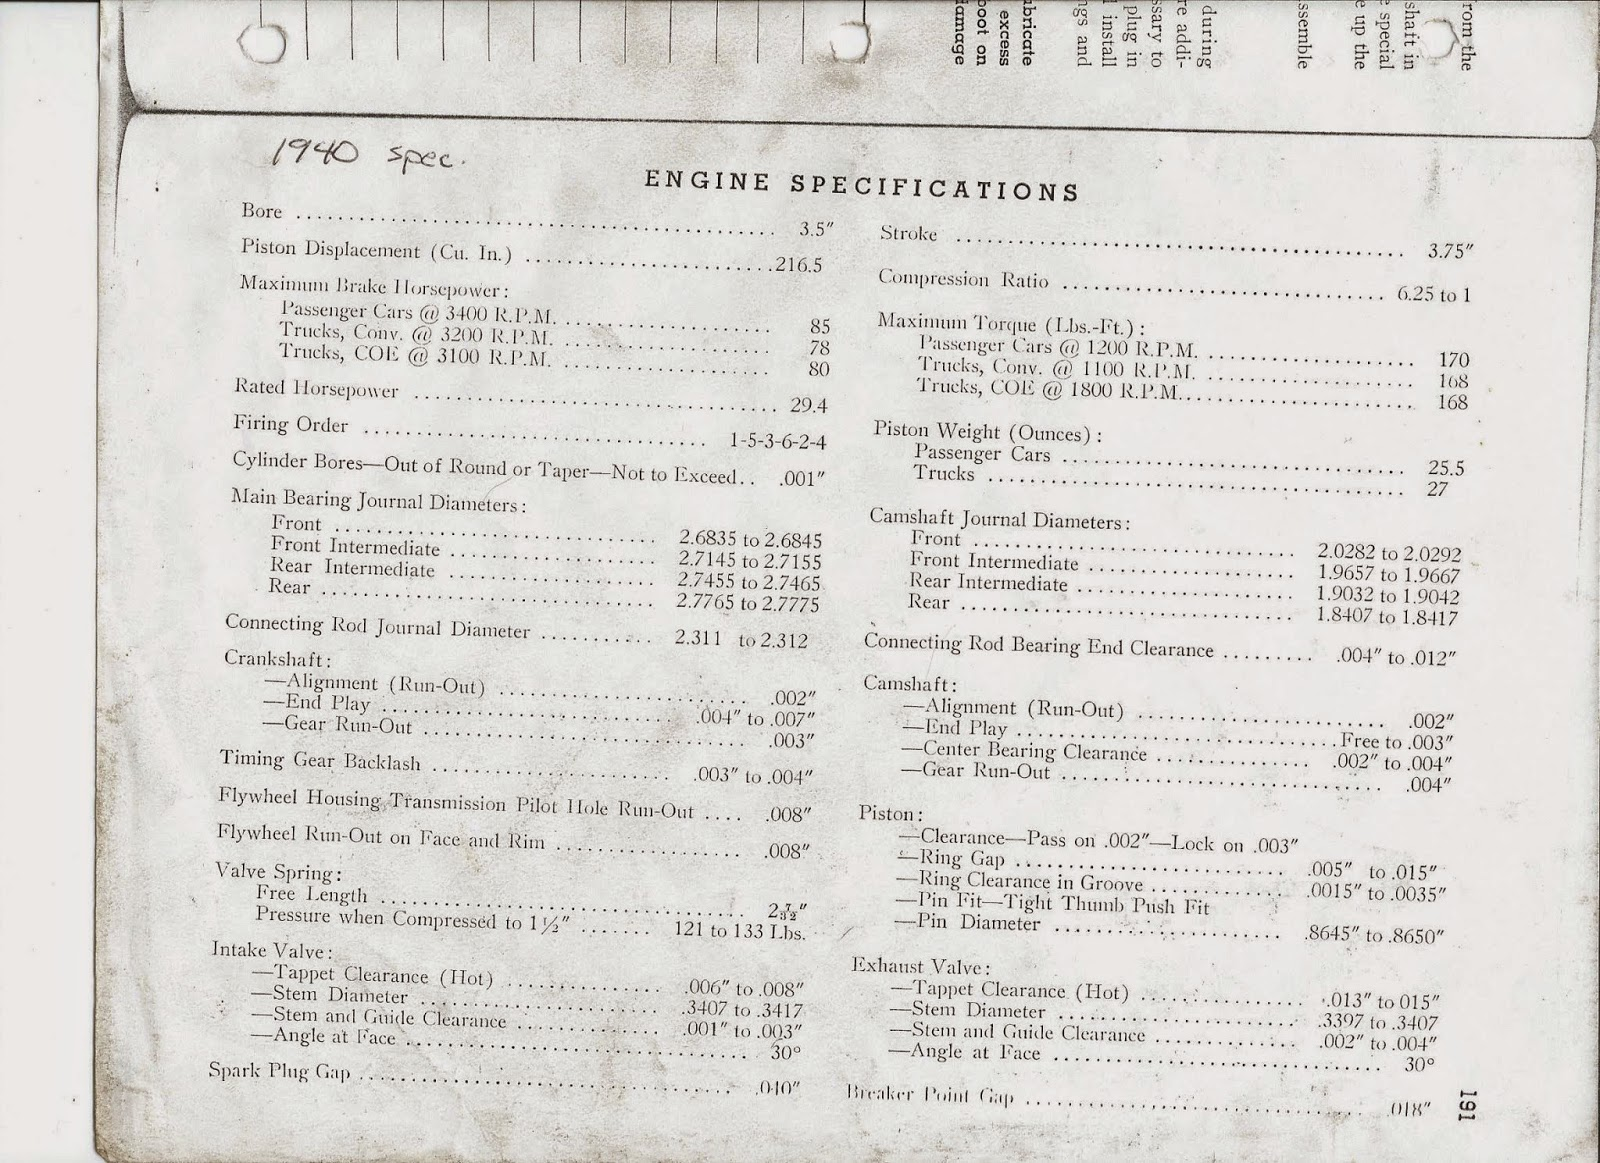 chev 235 guy  1940 chevrolet engine specifications